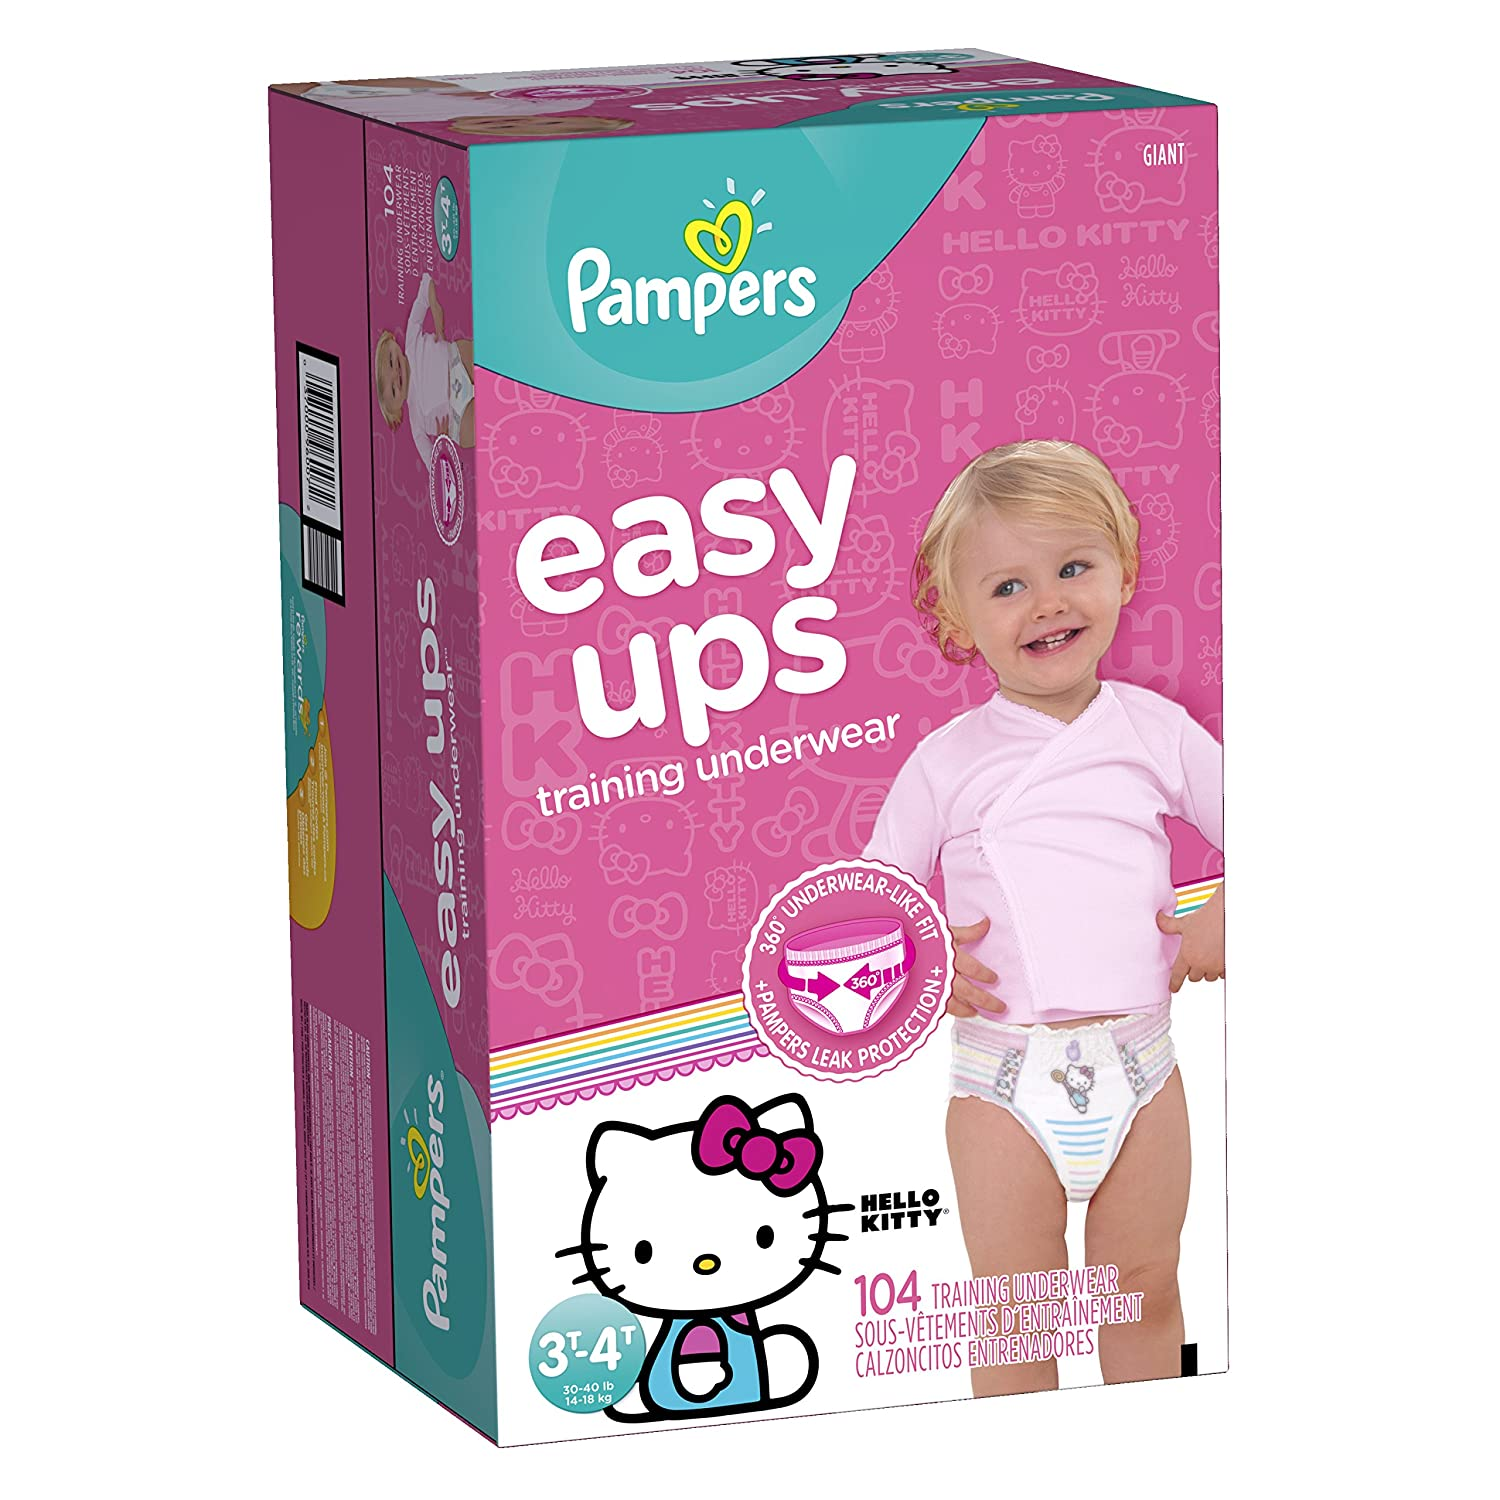 Pampers Easy Ups Pull On Disposable Training Diaper for Girls Size 5 (3T-4T), Giant Pack, 100 Count Procter and Gamble